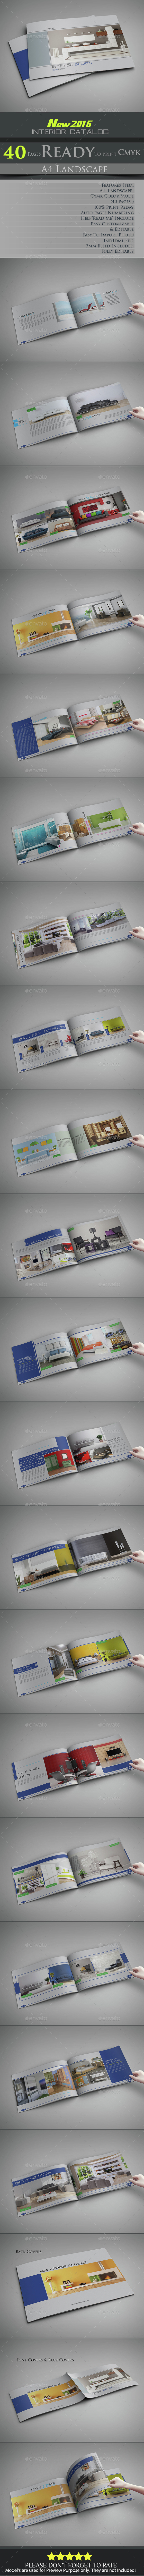 New Interior Catalogs 2016 - Catalogs Brochures